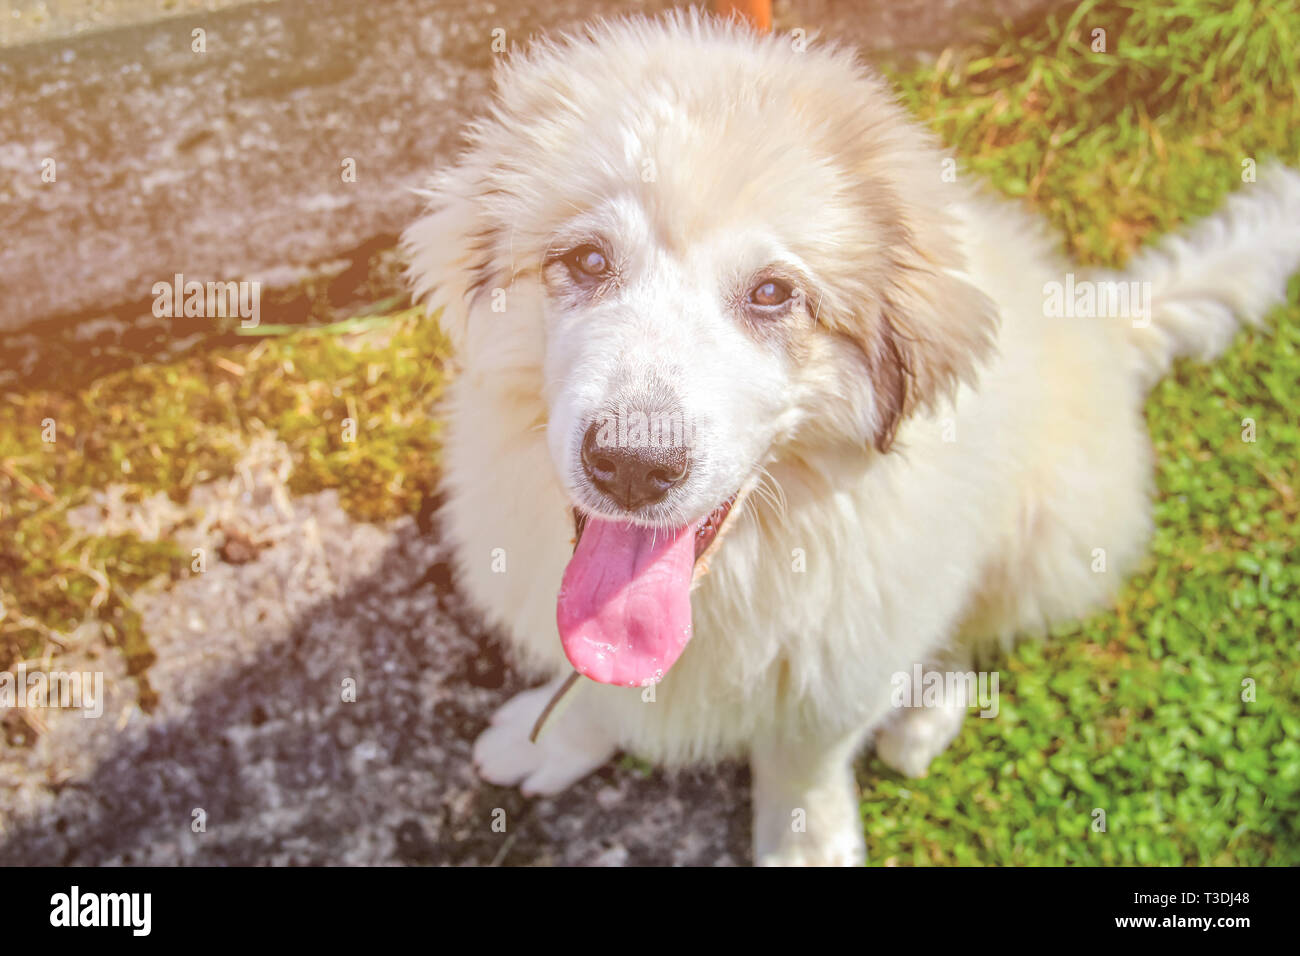 White cute puppy of a Pyrenean mountain dog sitting in green grass. It is sunset and the rays of the sun shine beautifully. - Stock Image